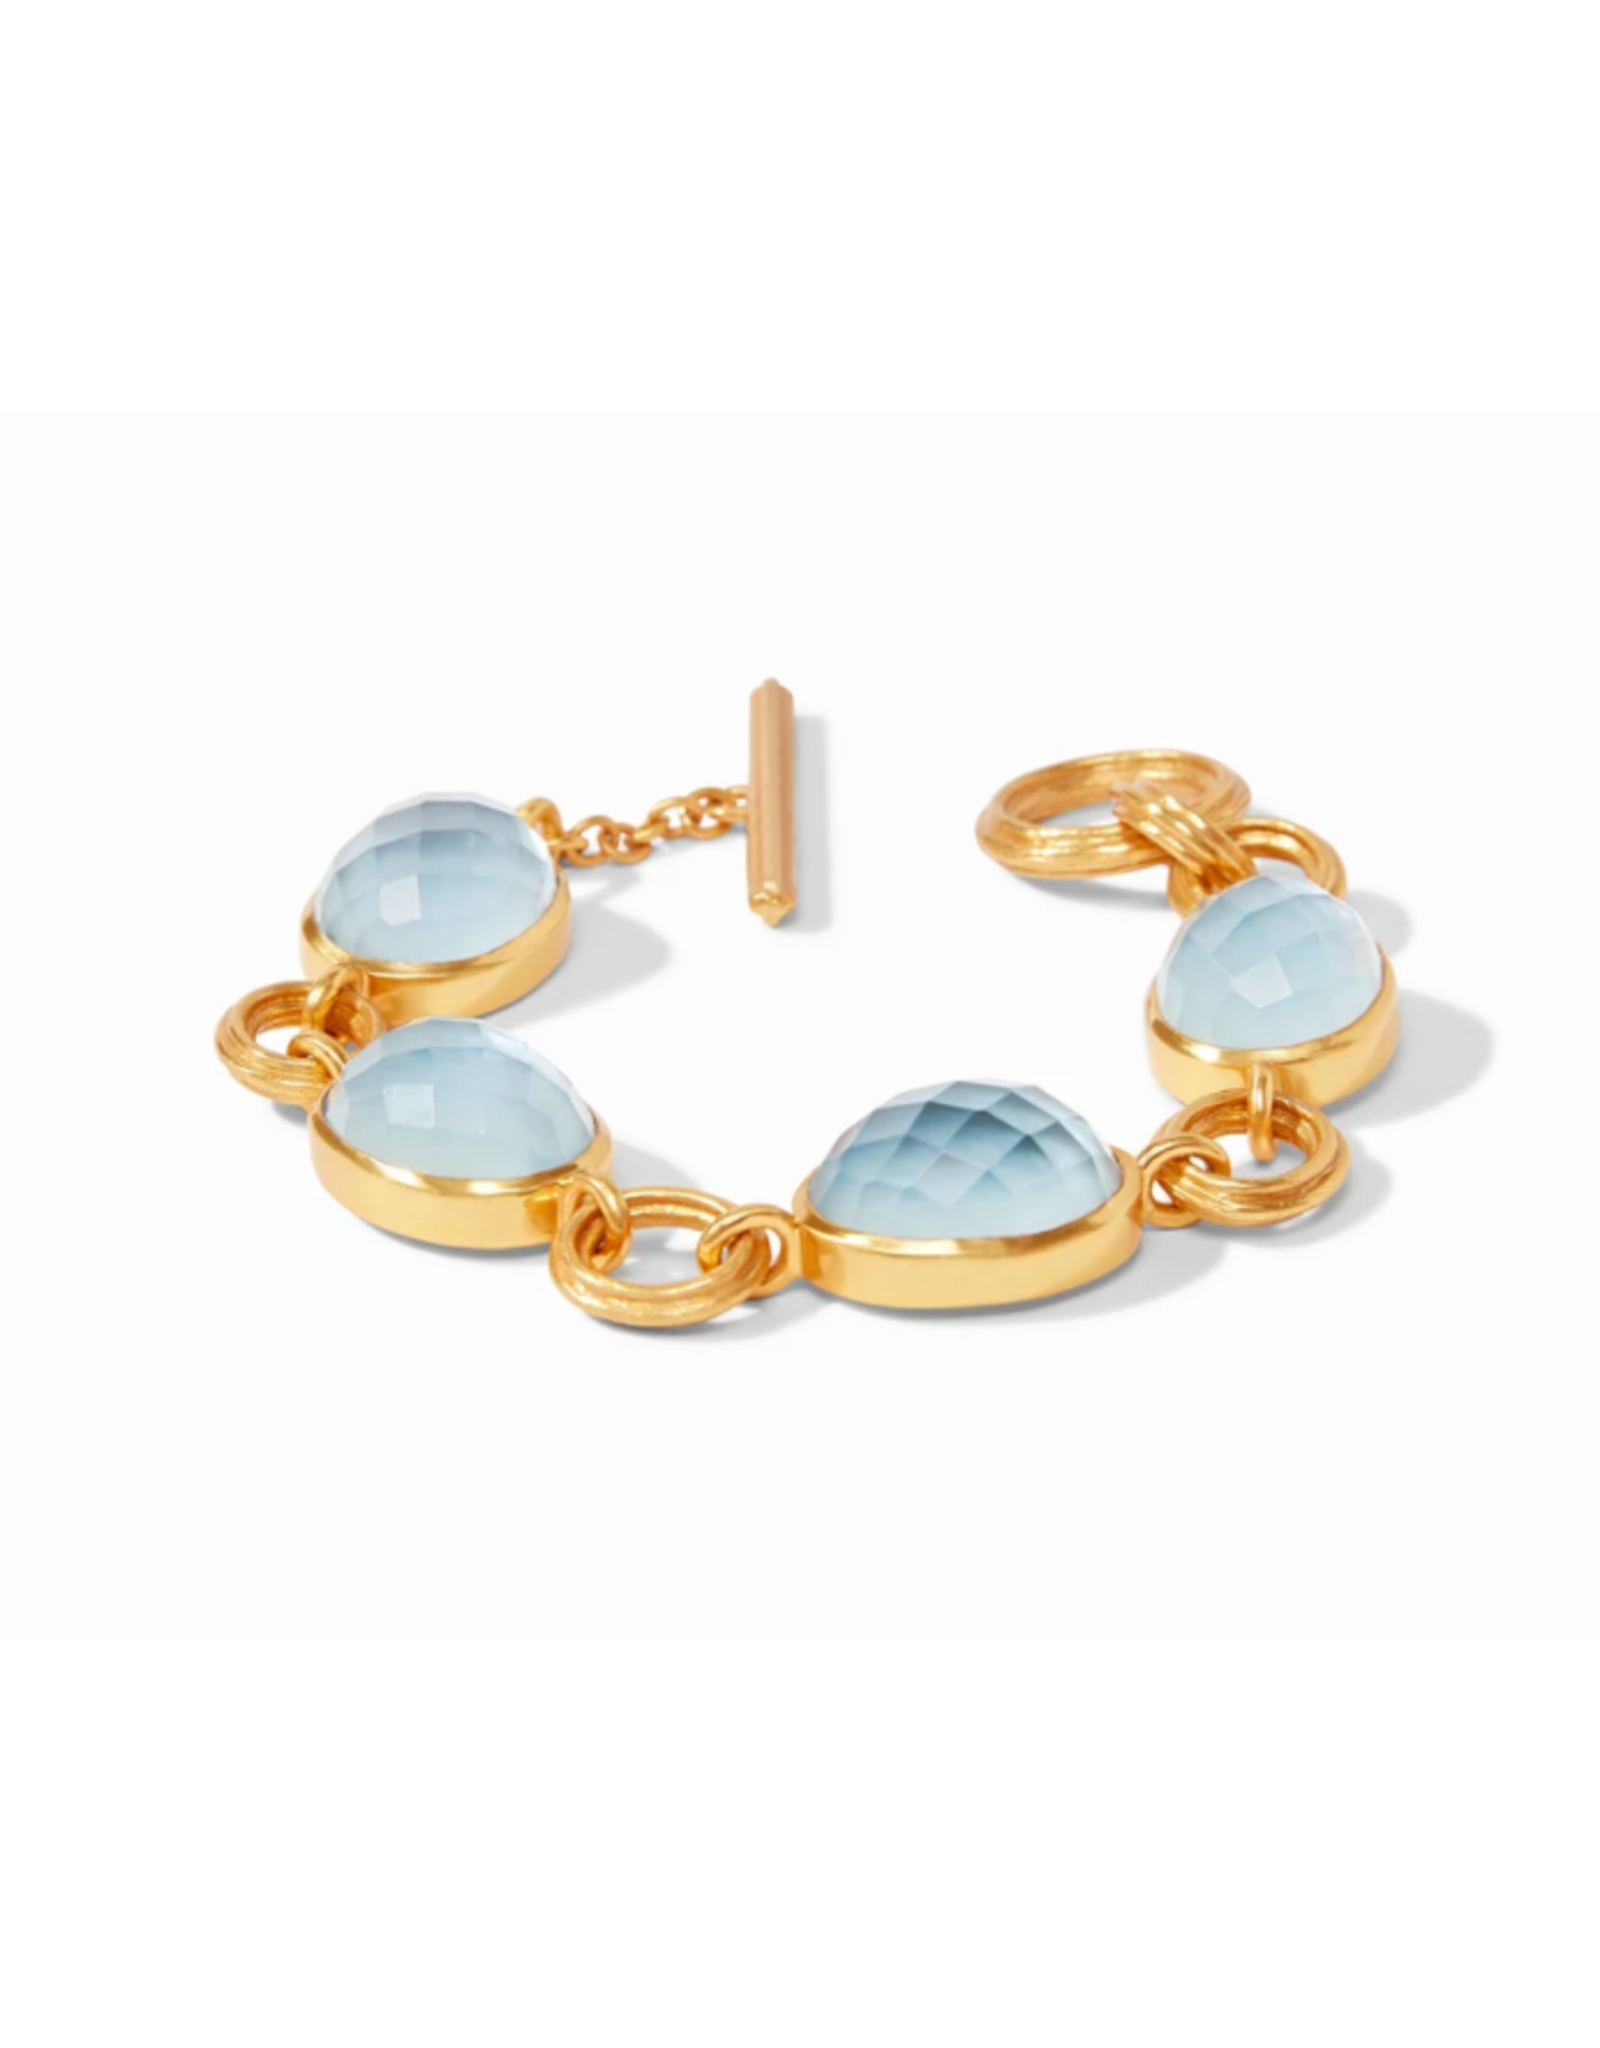 Julie Vos Barcelona Bracelet in Chalcedony Blue by Julie Vos